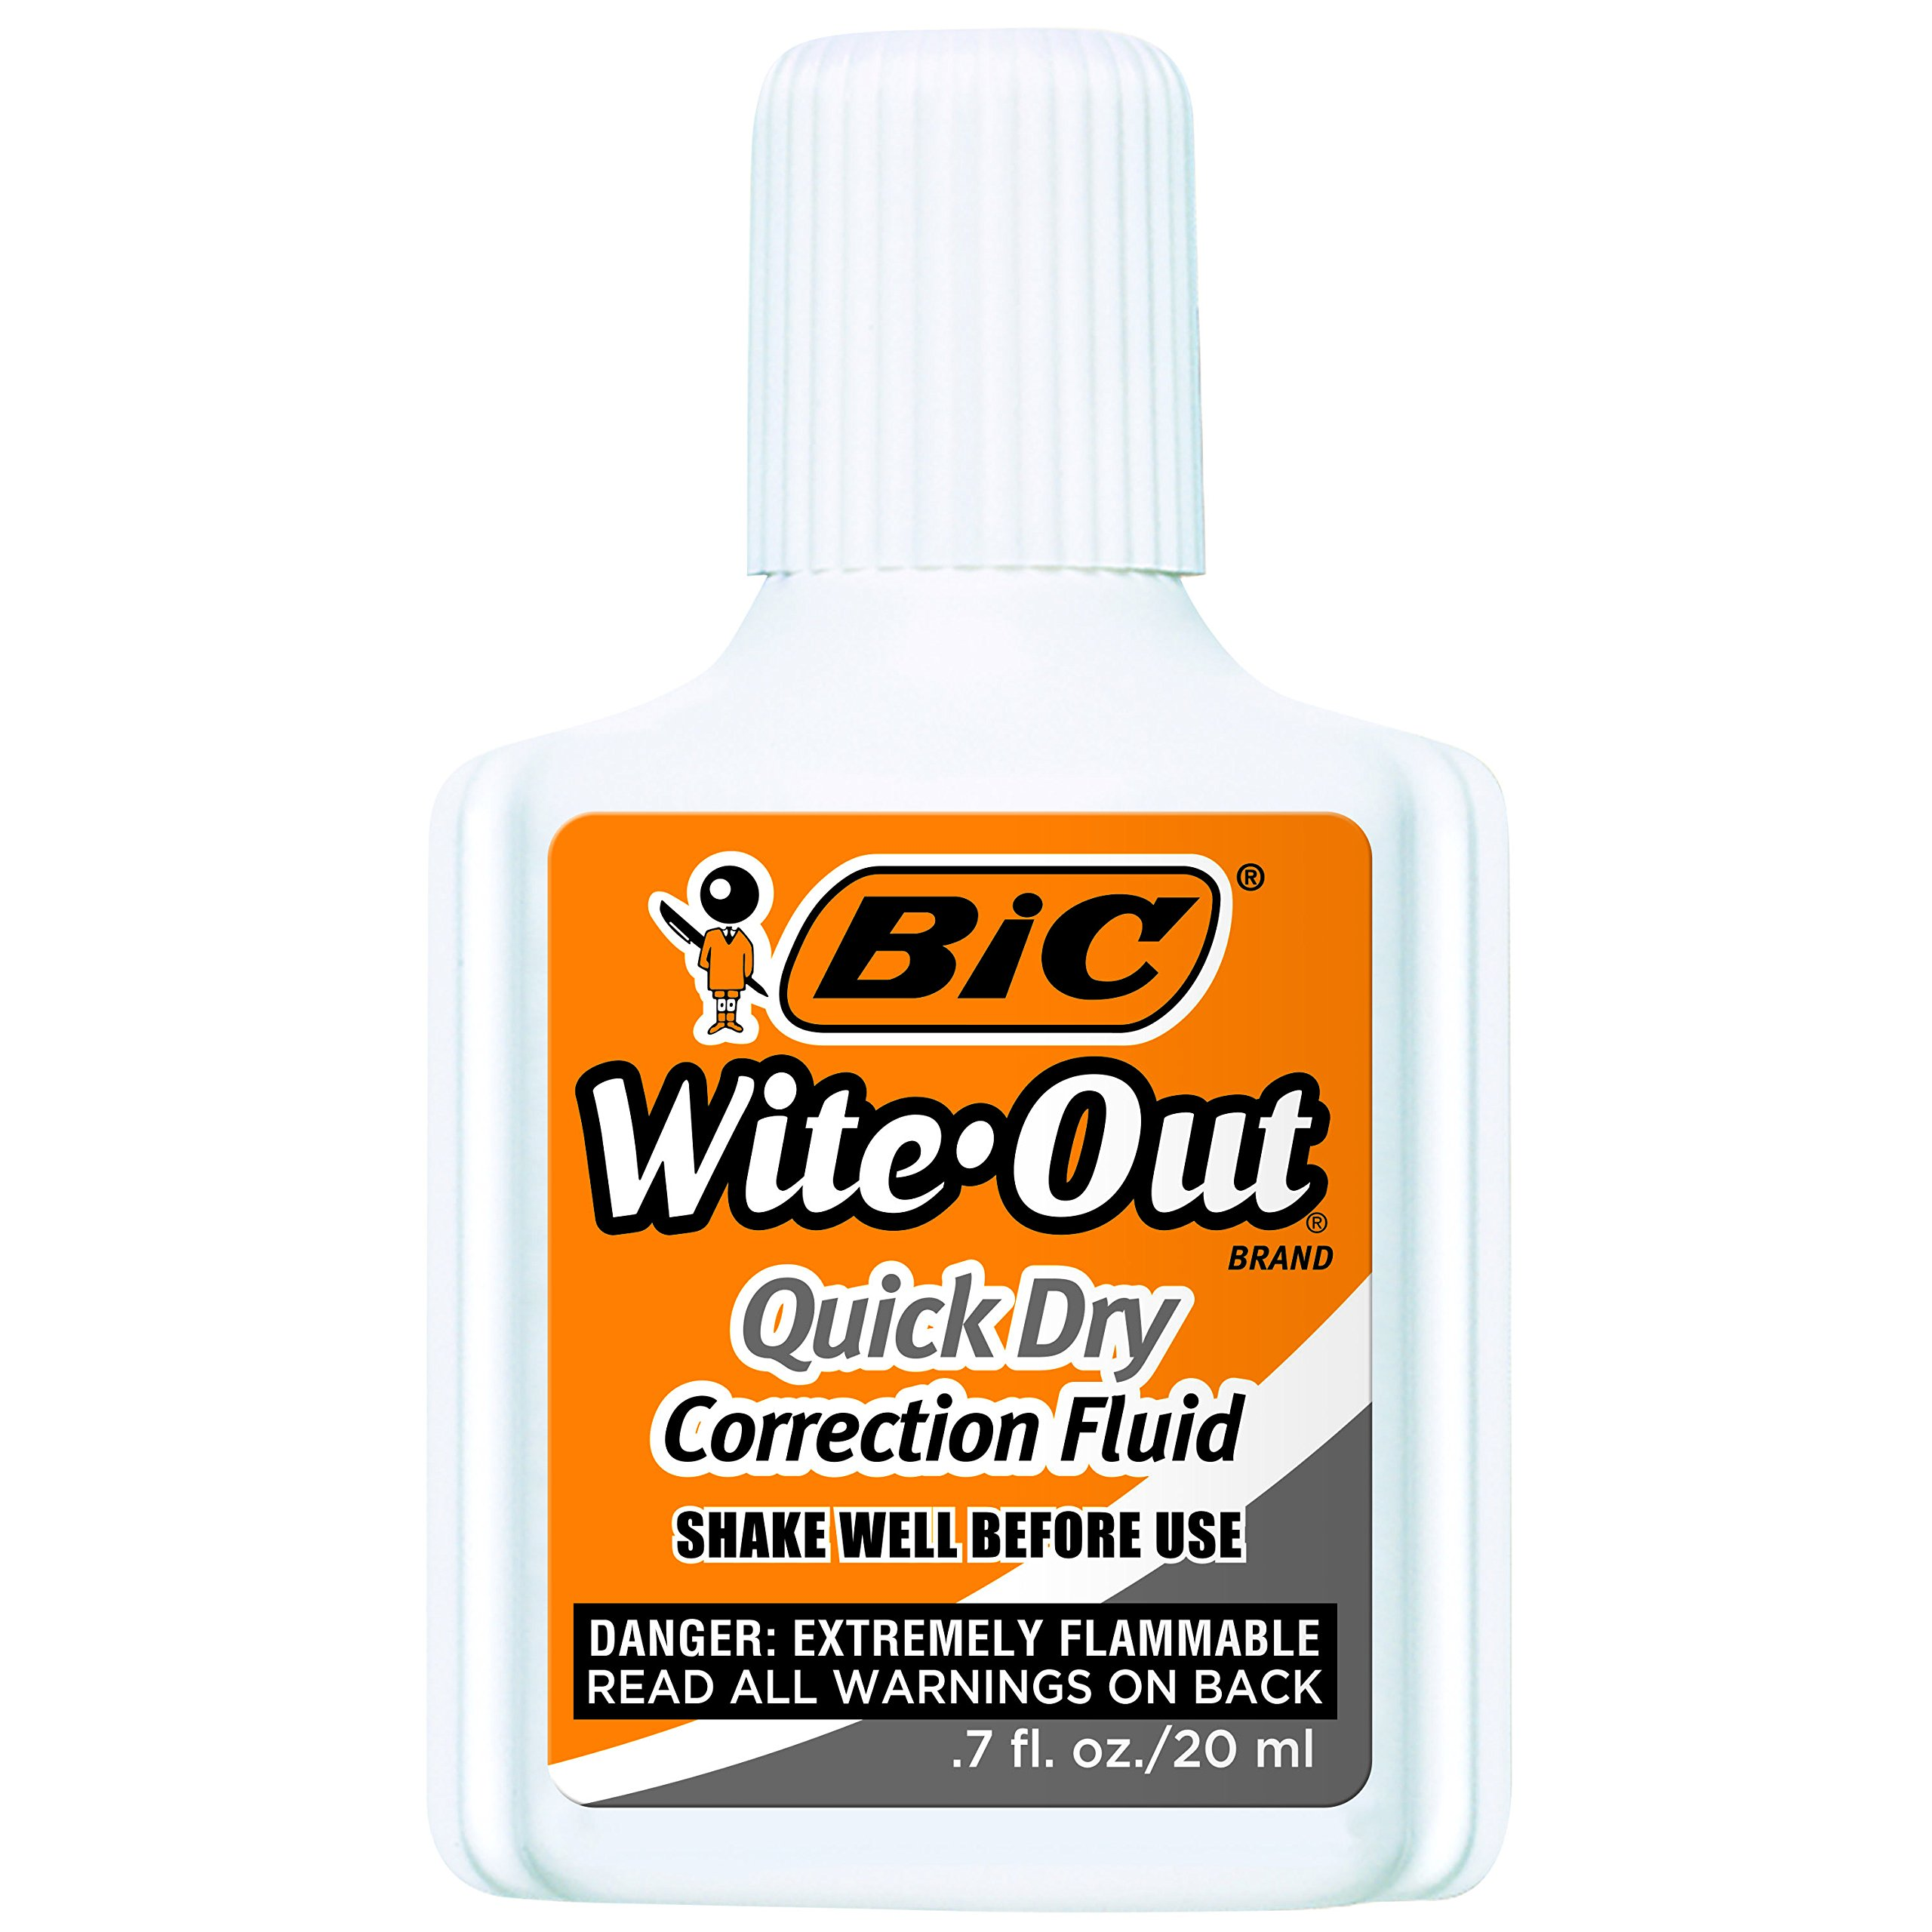 BIC Wite-Out Quick Dry Correction Fluid - 3 Pack (BICWOFQD324) by BIC (Image #2)